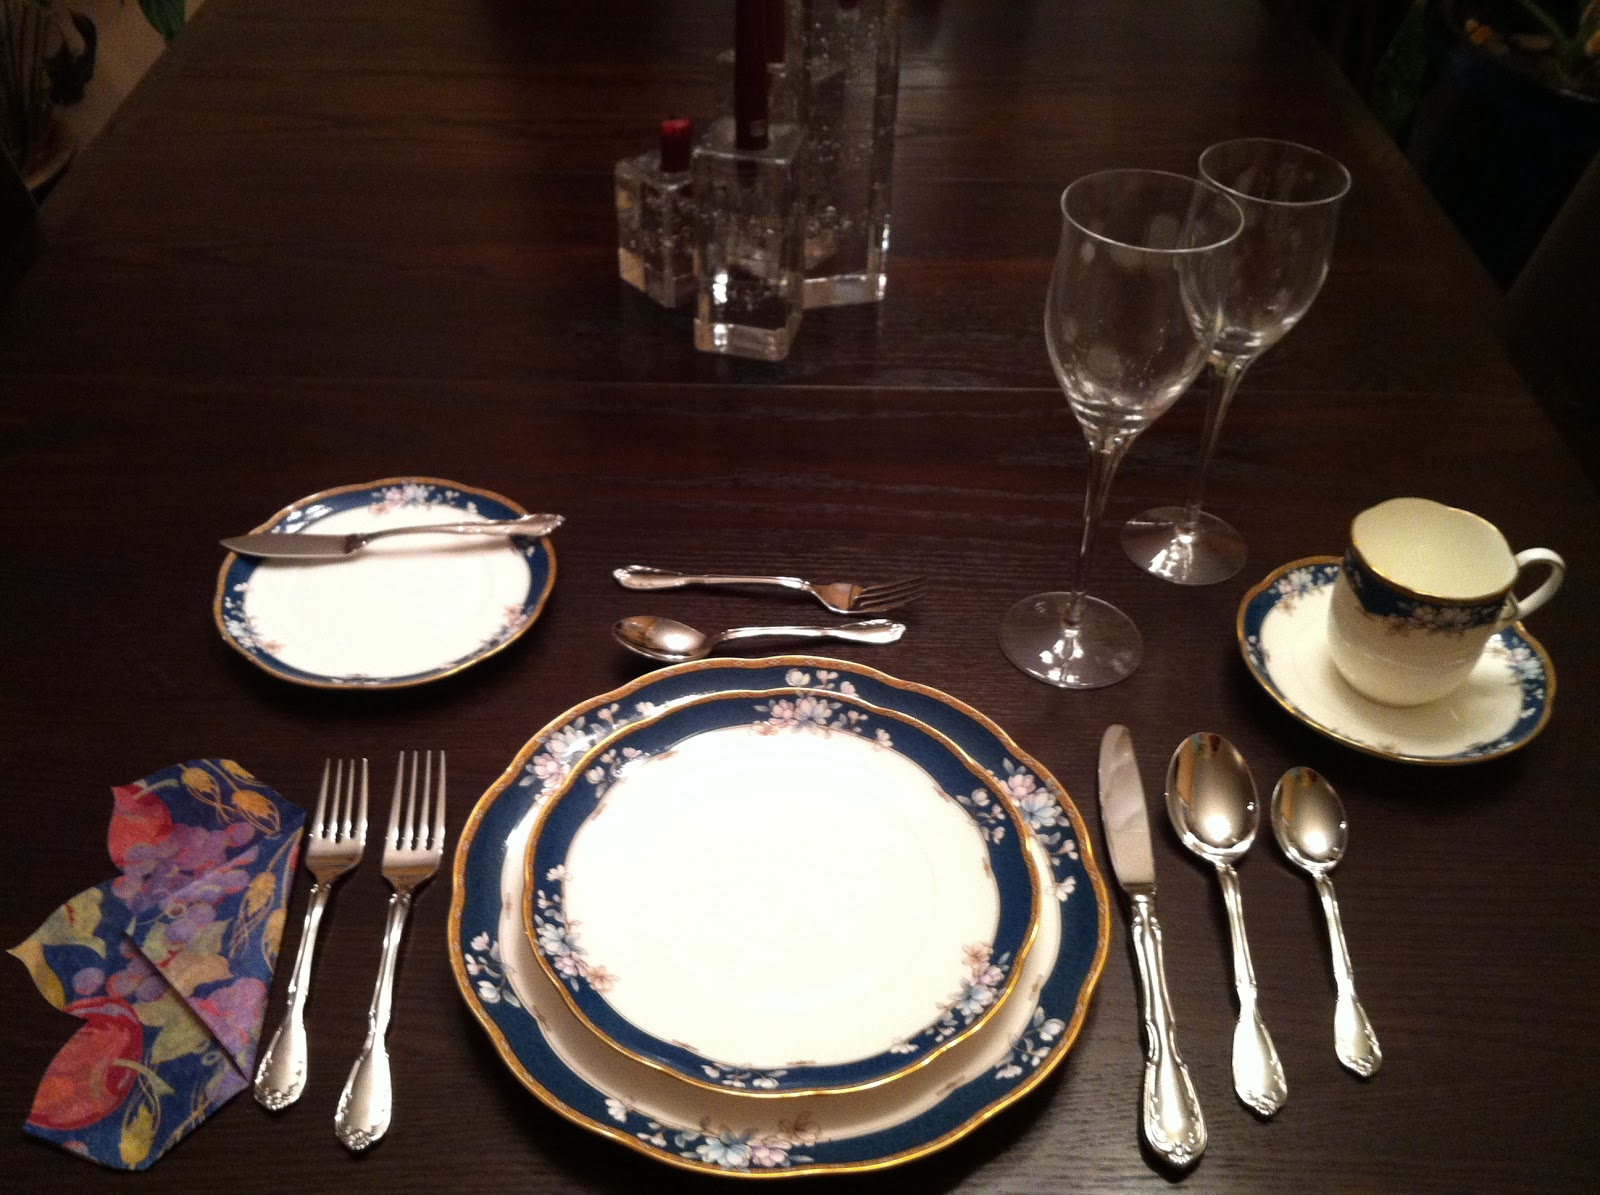 cravings table setting made easy or simple step by step instructions on how to set an elegant table. Black Bedroom Furniture Sets. Home Design Ideas